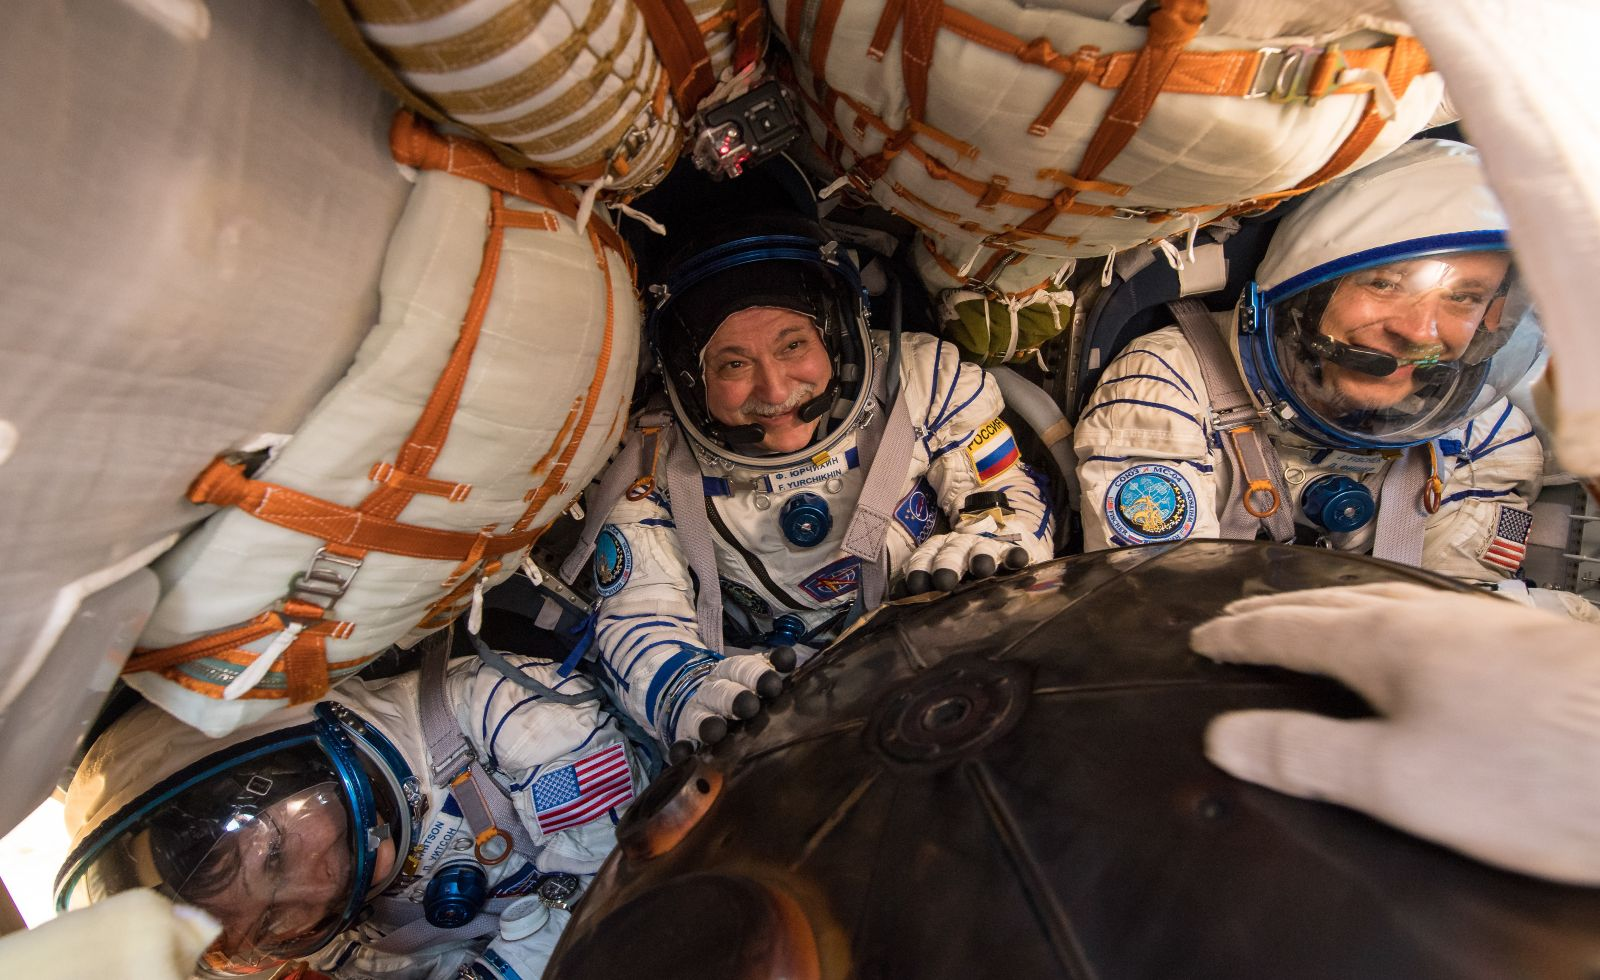 Expedition 52 Flight Engineer Peggy Whitson, left, Commander Fyodor Yurchikhin of Roscosmos, center, and Flight Engineer Jack Fischer get their first taste of fresh air in months. Whitson was in space for 288 days while Yurchikhin and Fischer were in orbit for 136 days. Photo Credit: Bill Ingalls / NASA